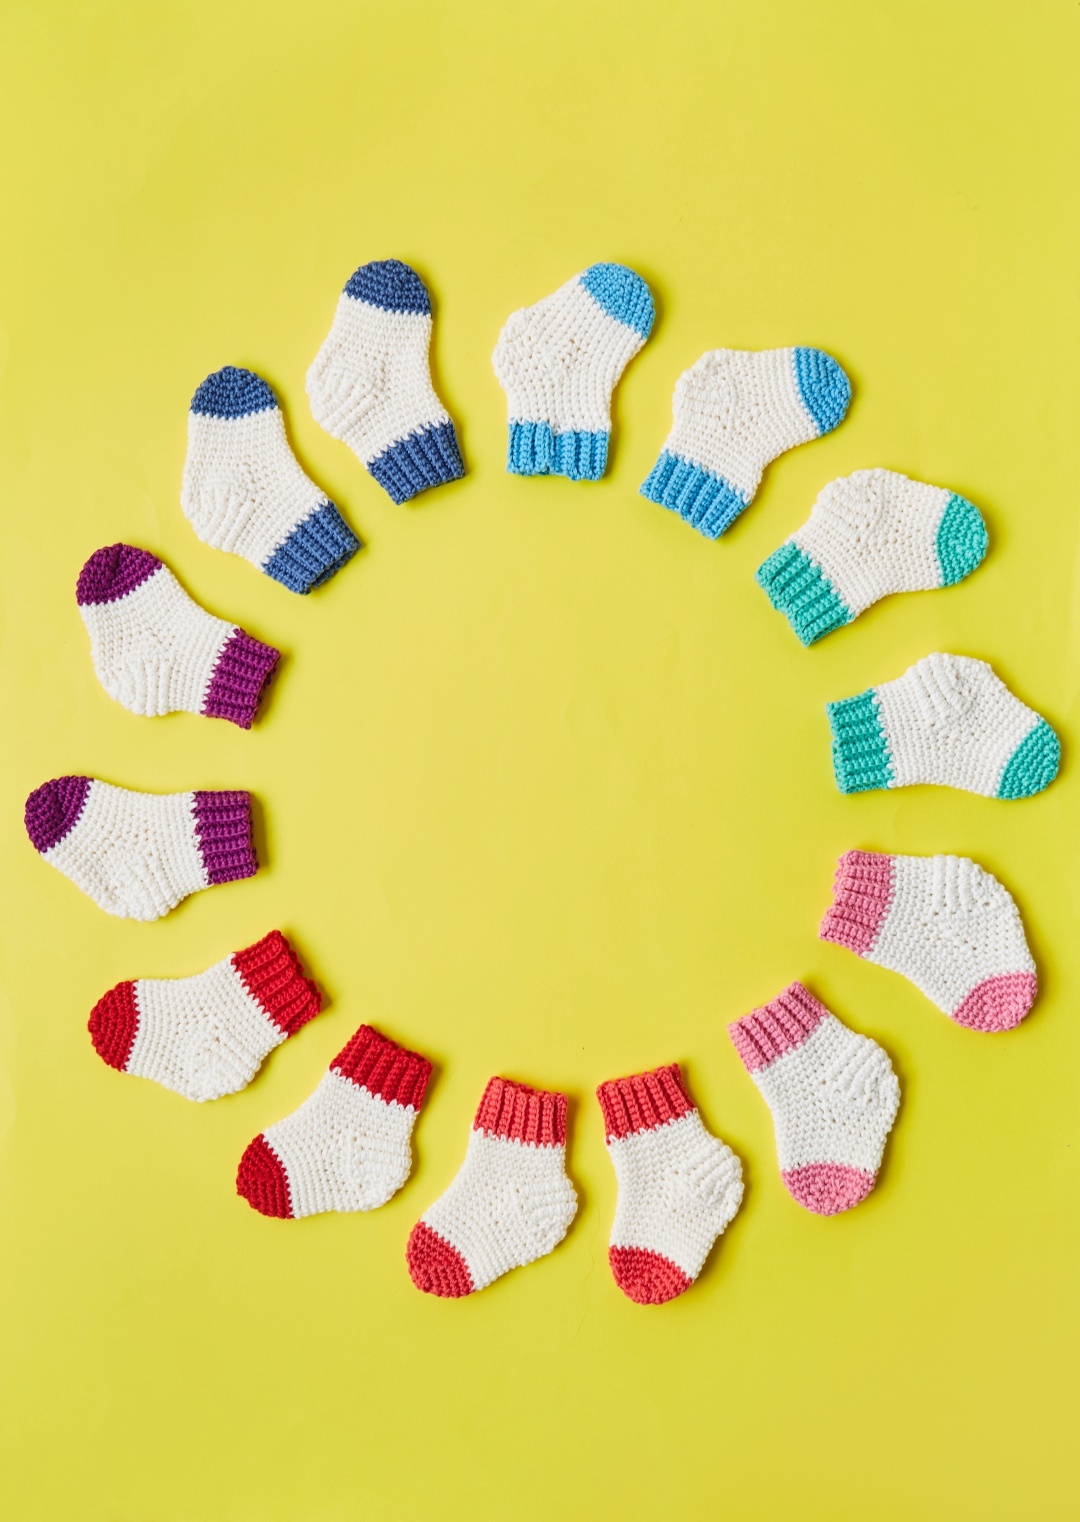 Take a look inside our new look issue! - image Jane-Howorth-Topsy-Socks-Rico-Baby-Cotton-Soft-1 on https://knitting-crocheting-yarn.com